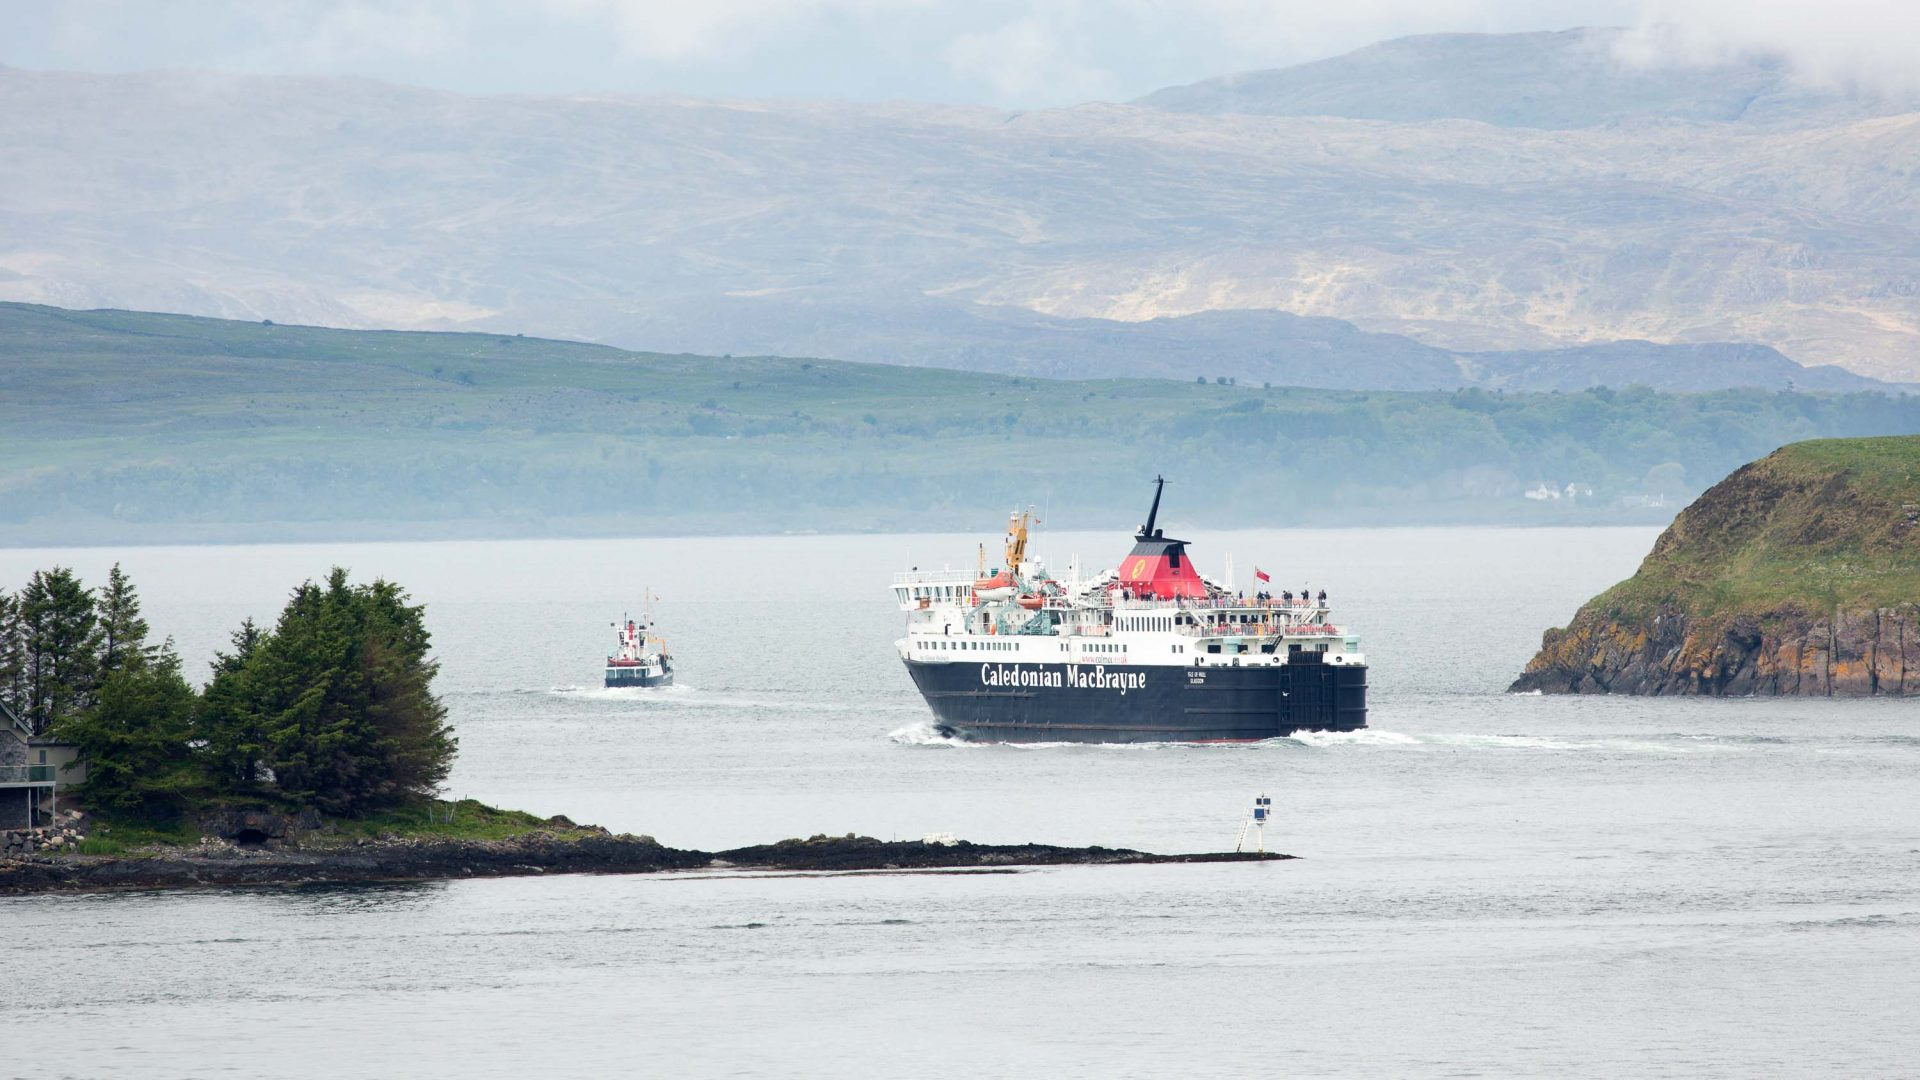 Cruising Scotland's scenic Cocktail Isles—for just $20